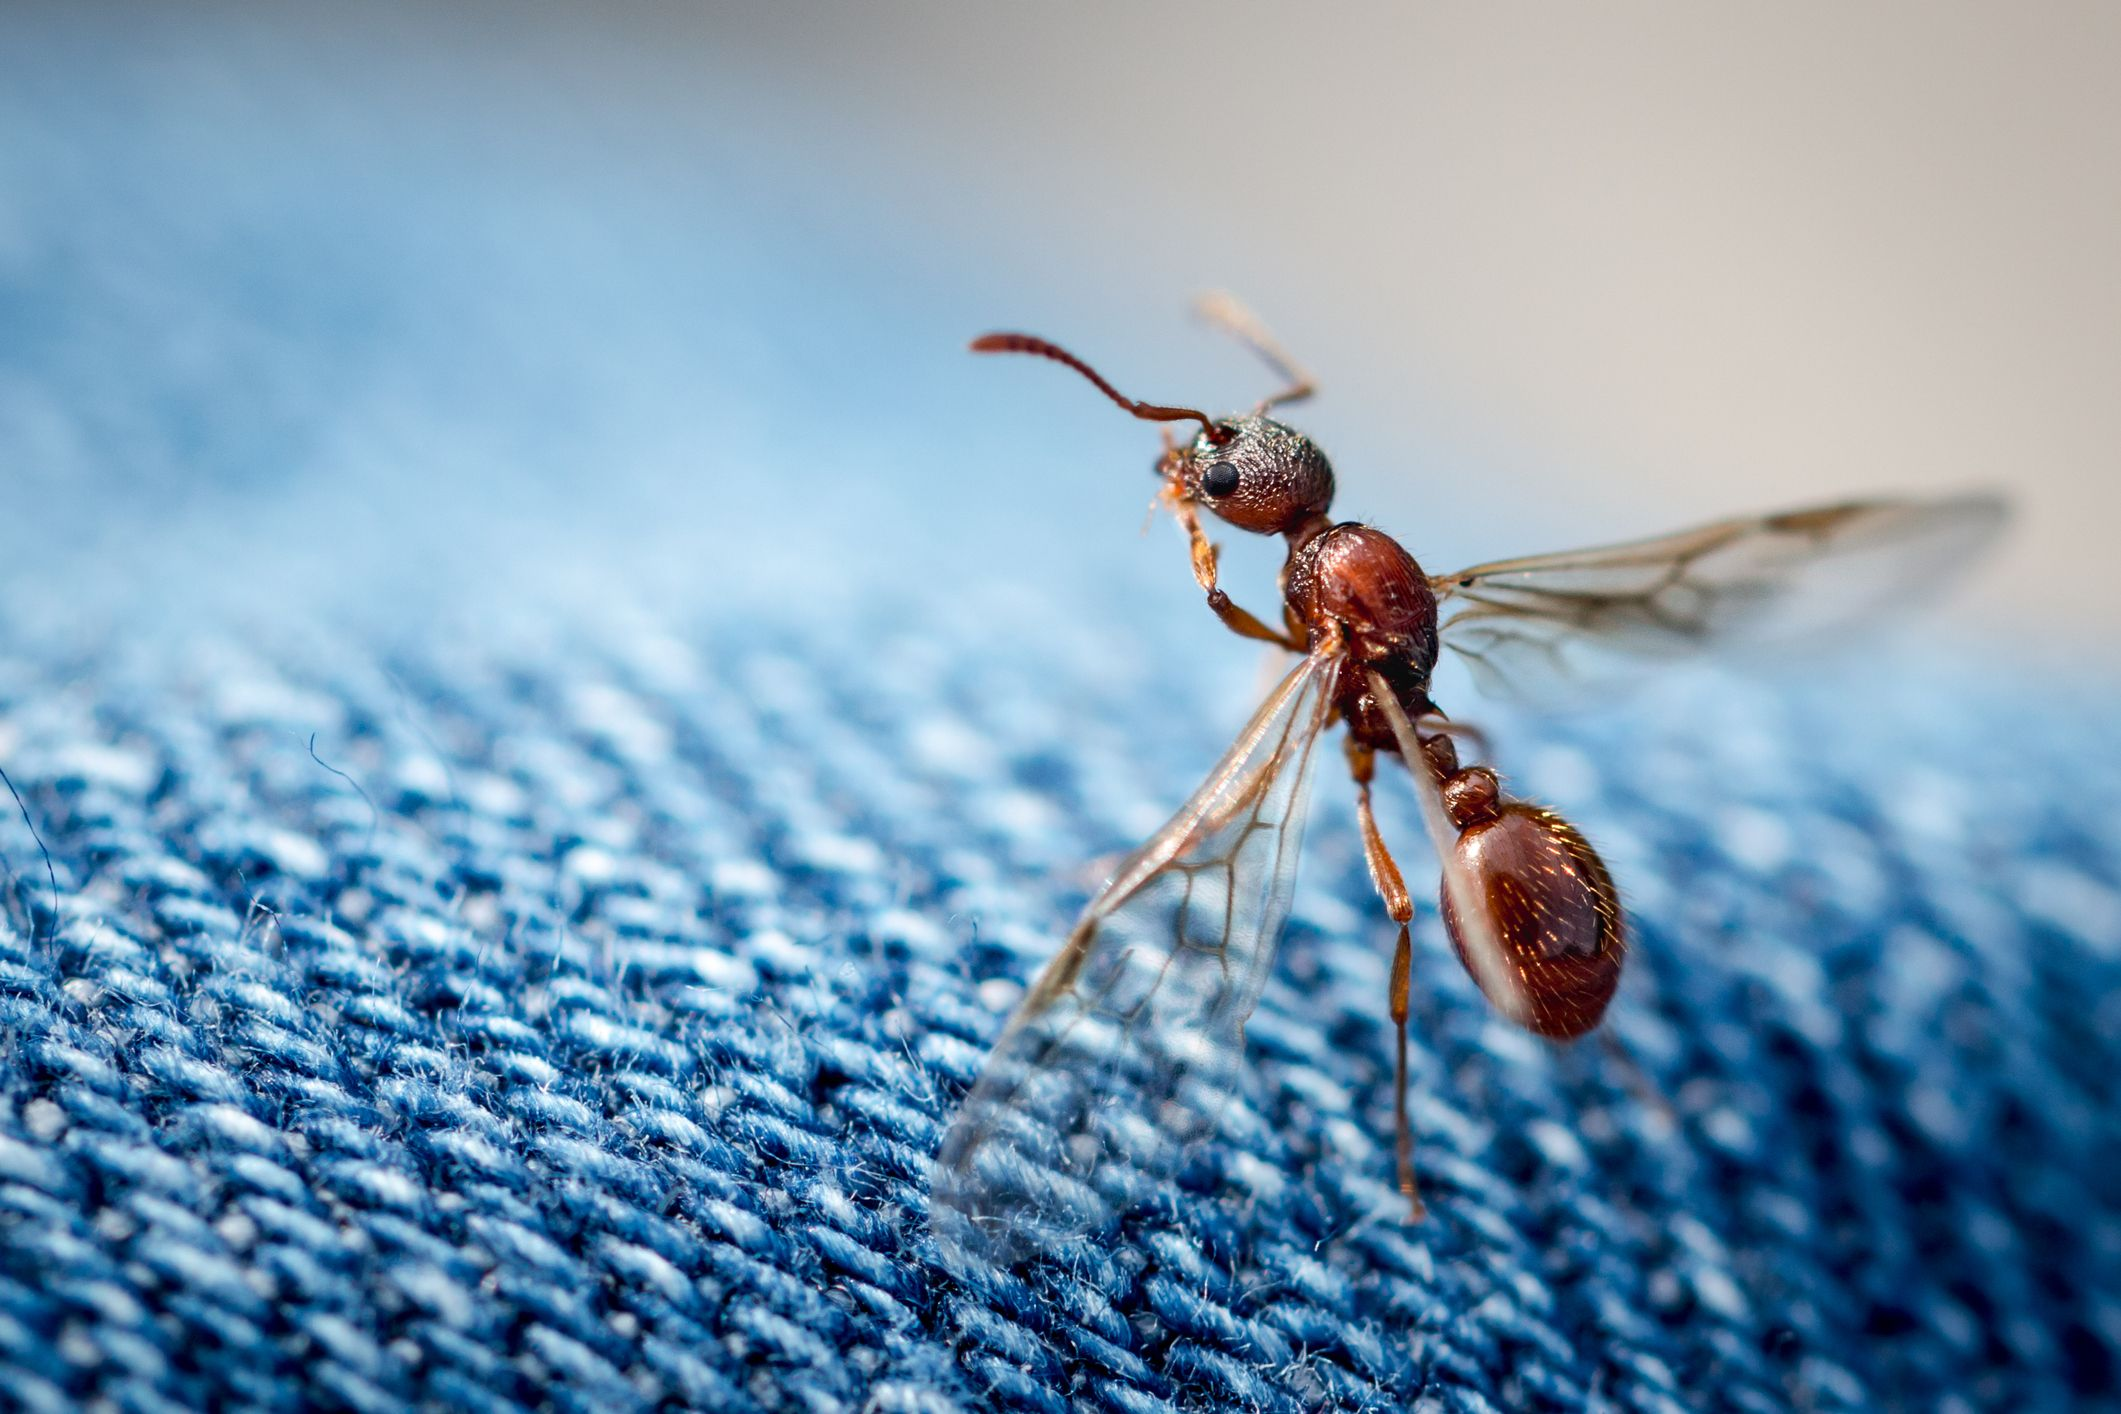 How To Get Rid Of Flying Ants In Your Home According To Pros